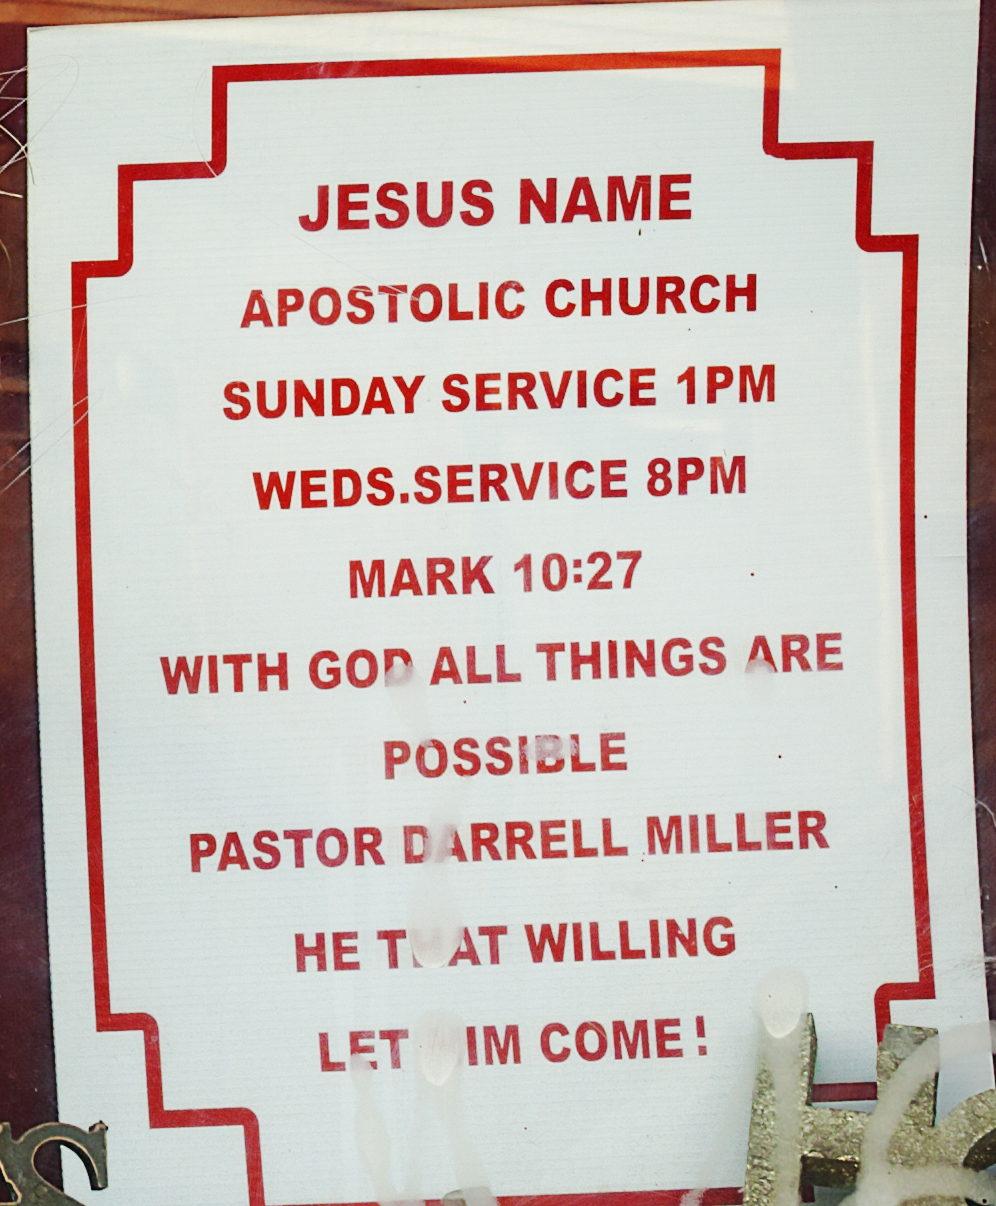 JESUS NAME APOSTOLIC CHURCH--Kensington (detail)